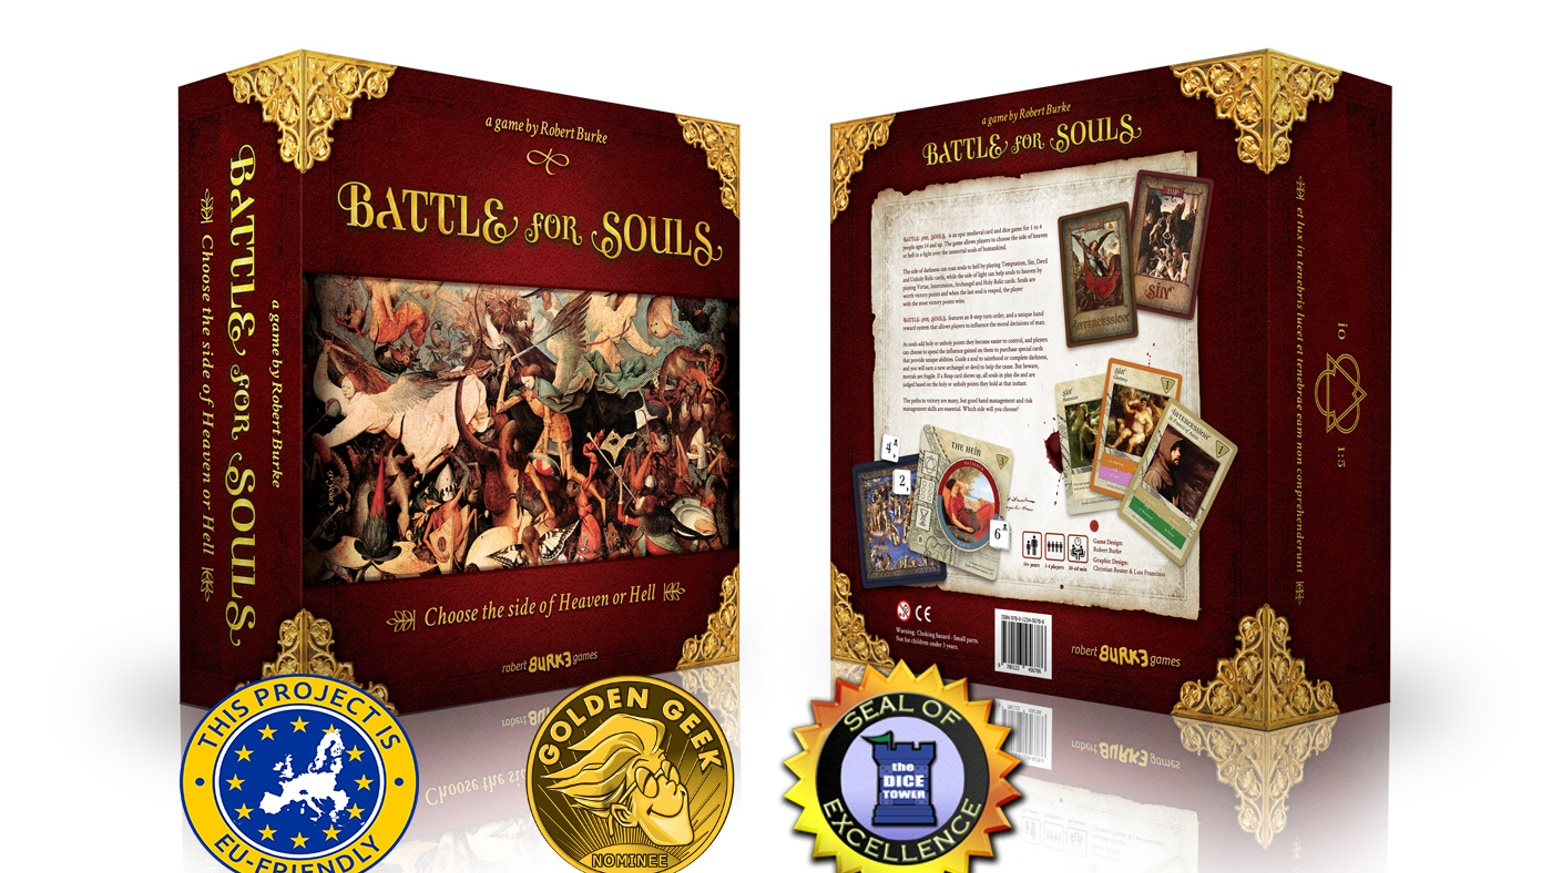 The critically acclaimed tabletop game Battle For Souls is expanded and improved in this upgraded 2nd edition!